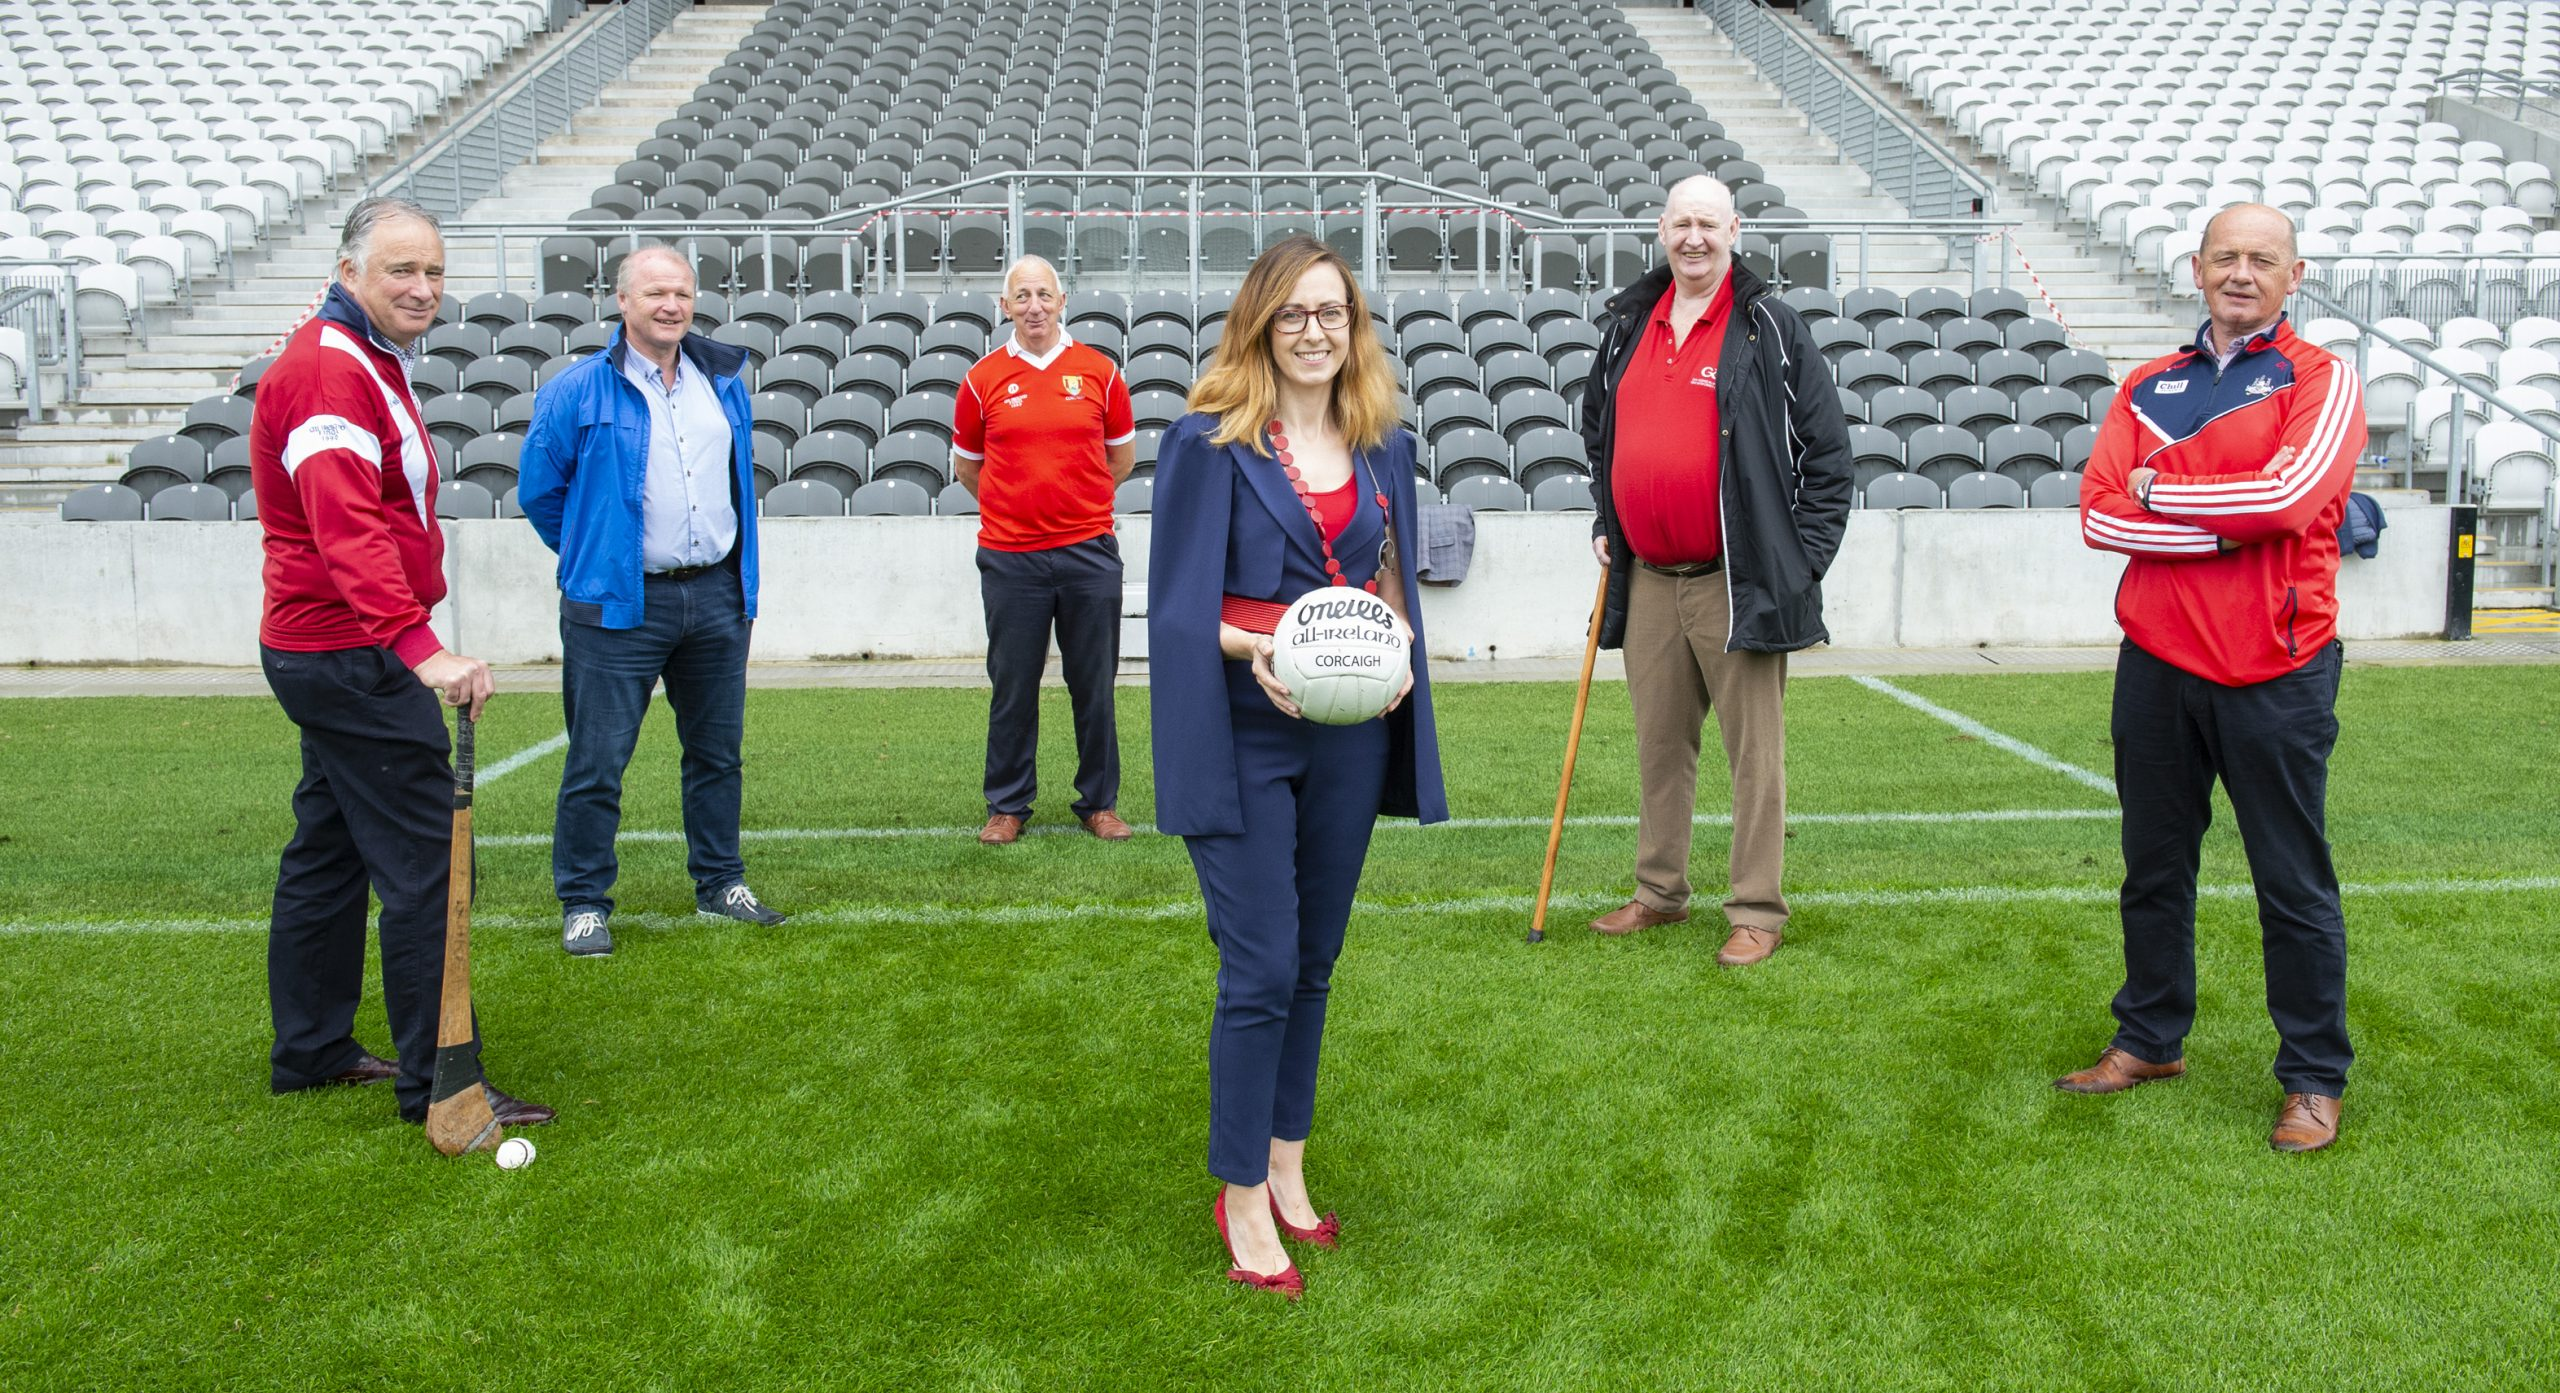 Cork GAA and Marymount Hospice are calling on people GO RED for Cork